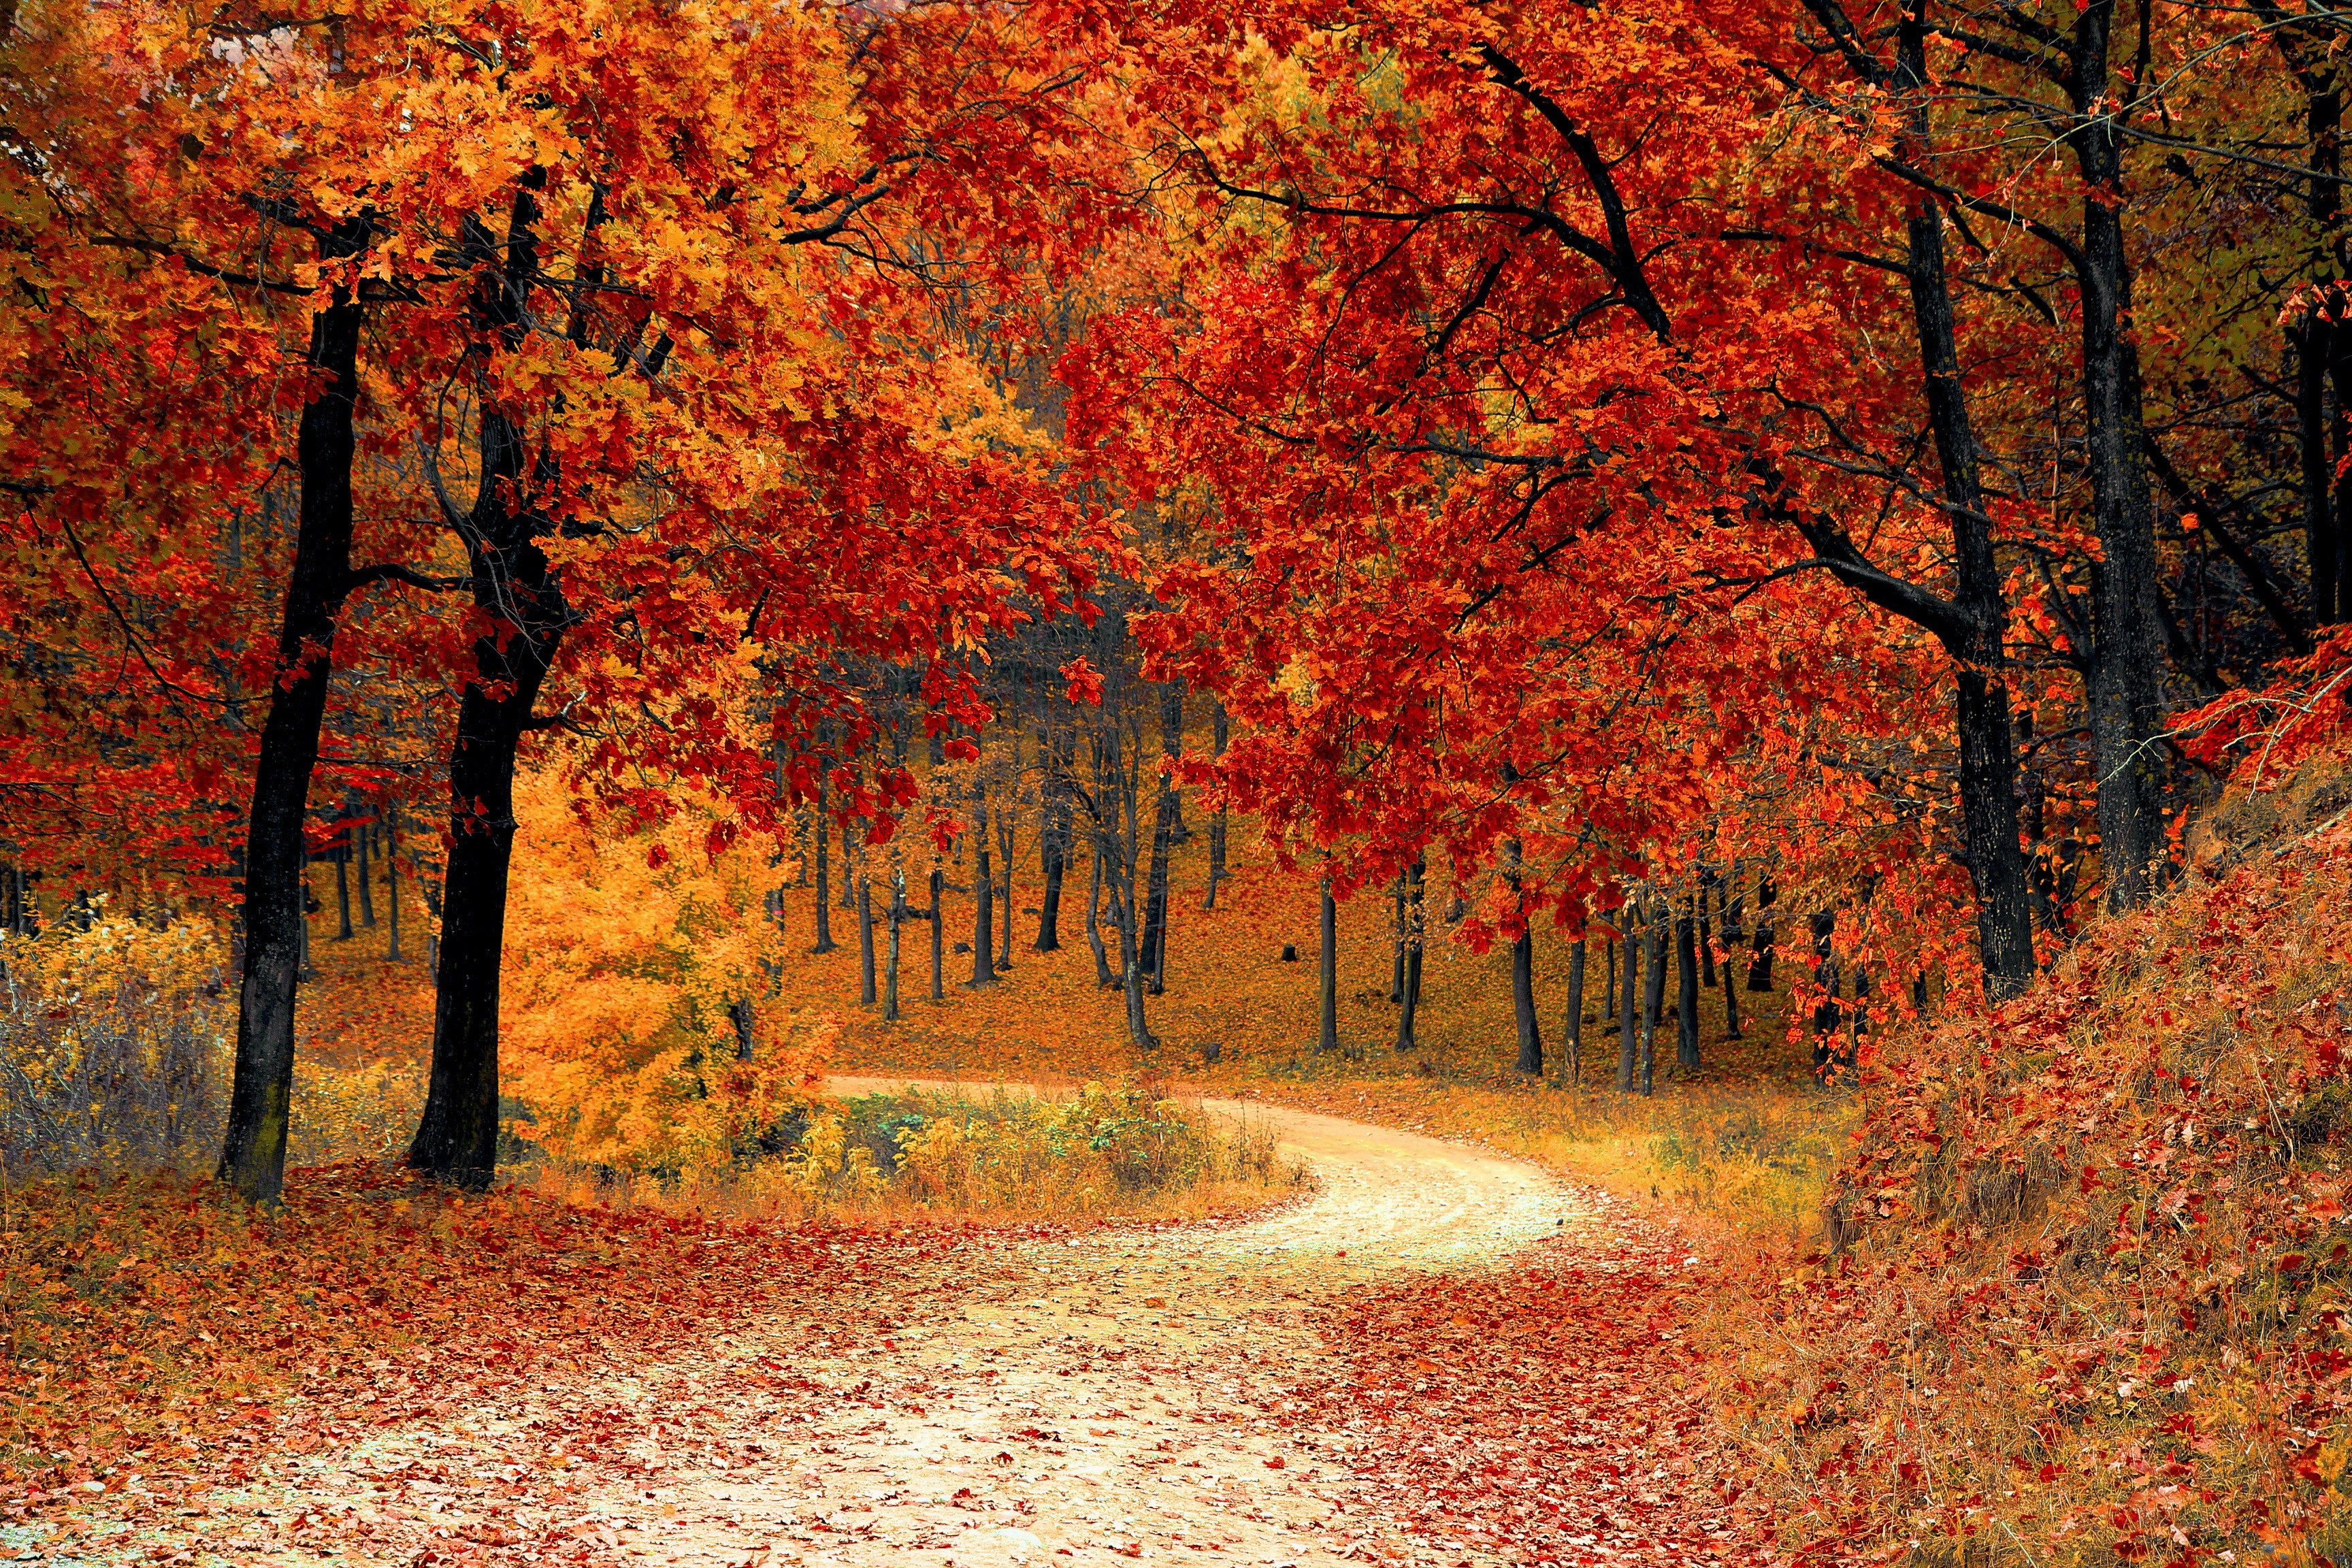 Americas Best Cities For Fall Folige Viewing Along With A Little Adventure From Ghost Tours To Wine Trains The Nature Pictures Autumn Scenery Nature Wallpaper